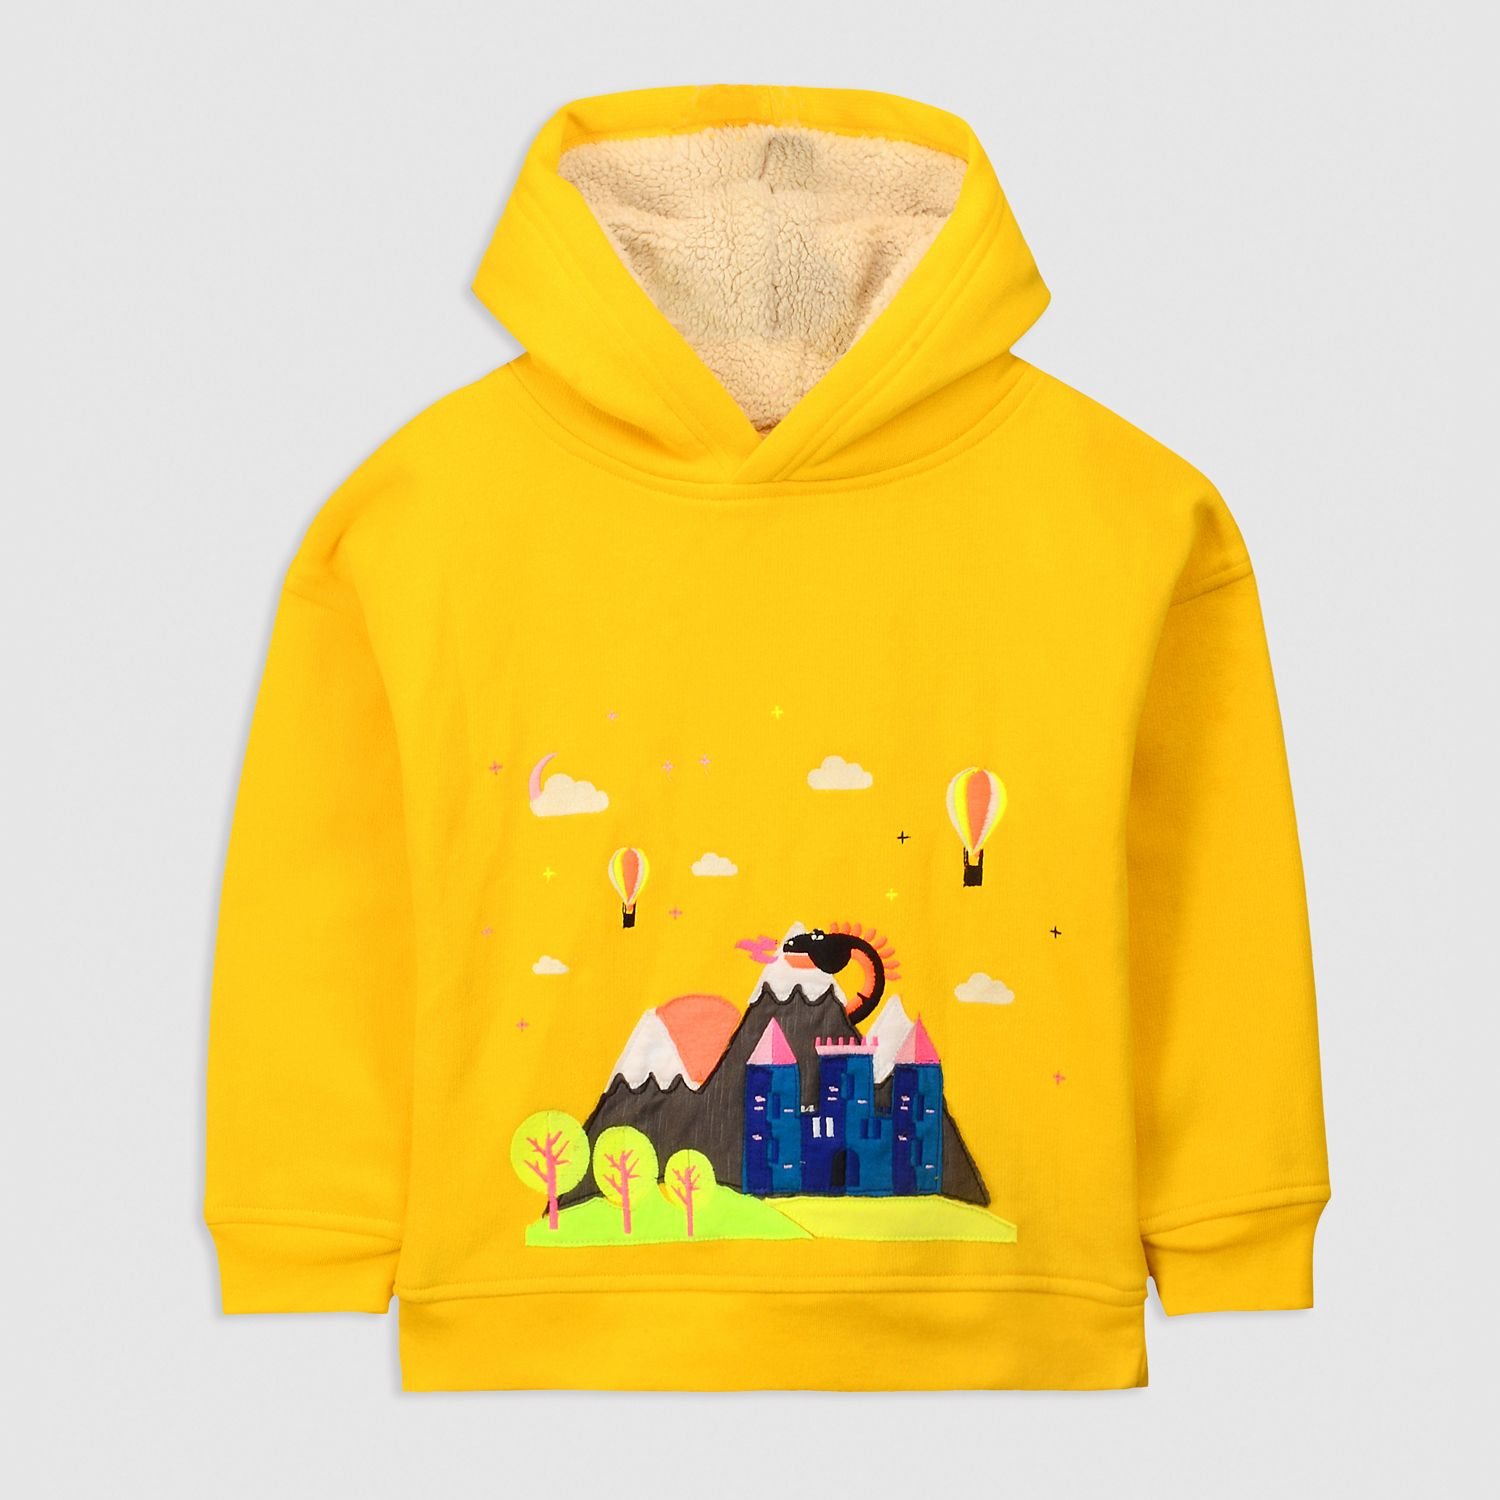 Paradise Sweatshirt for kids